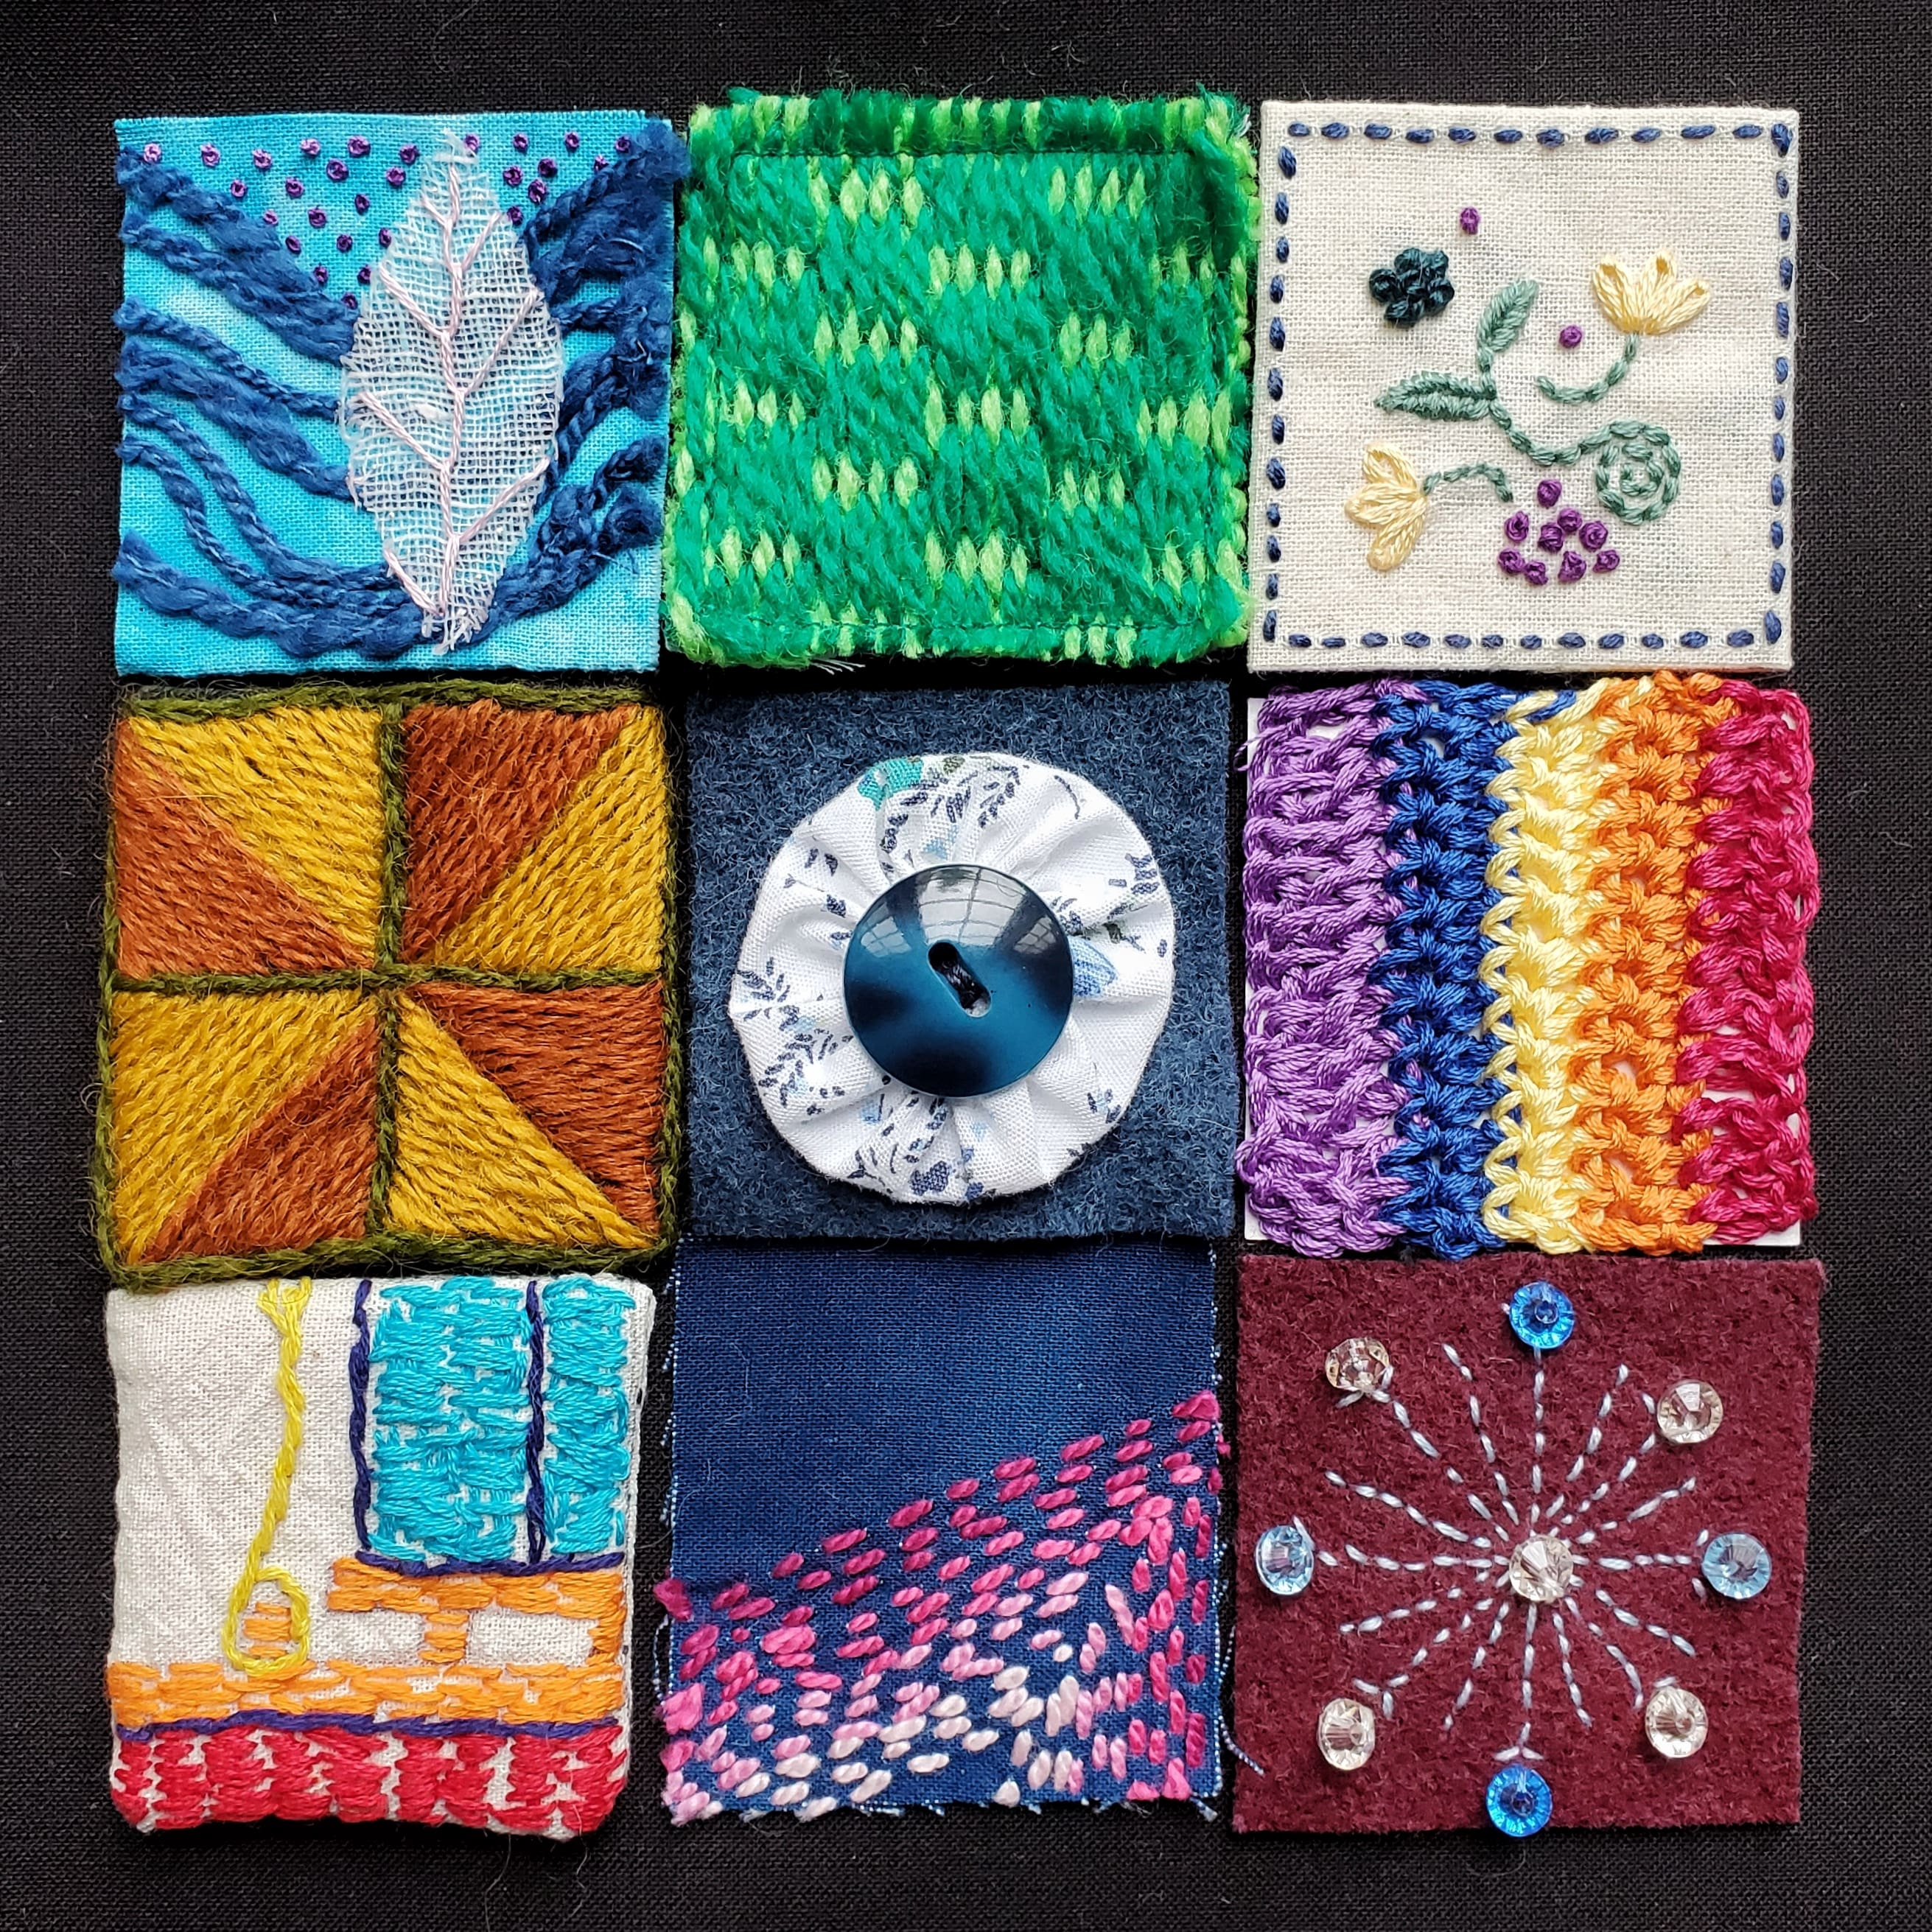 Small squares of individual fabric assembled into a larger square